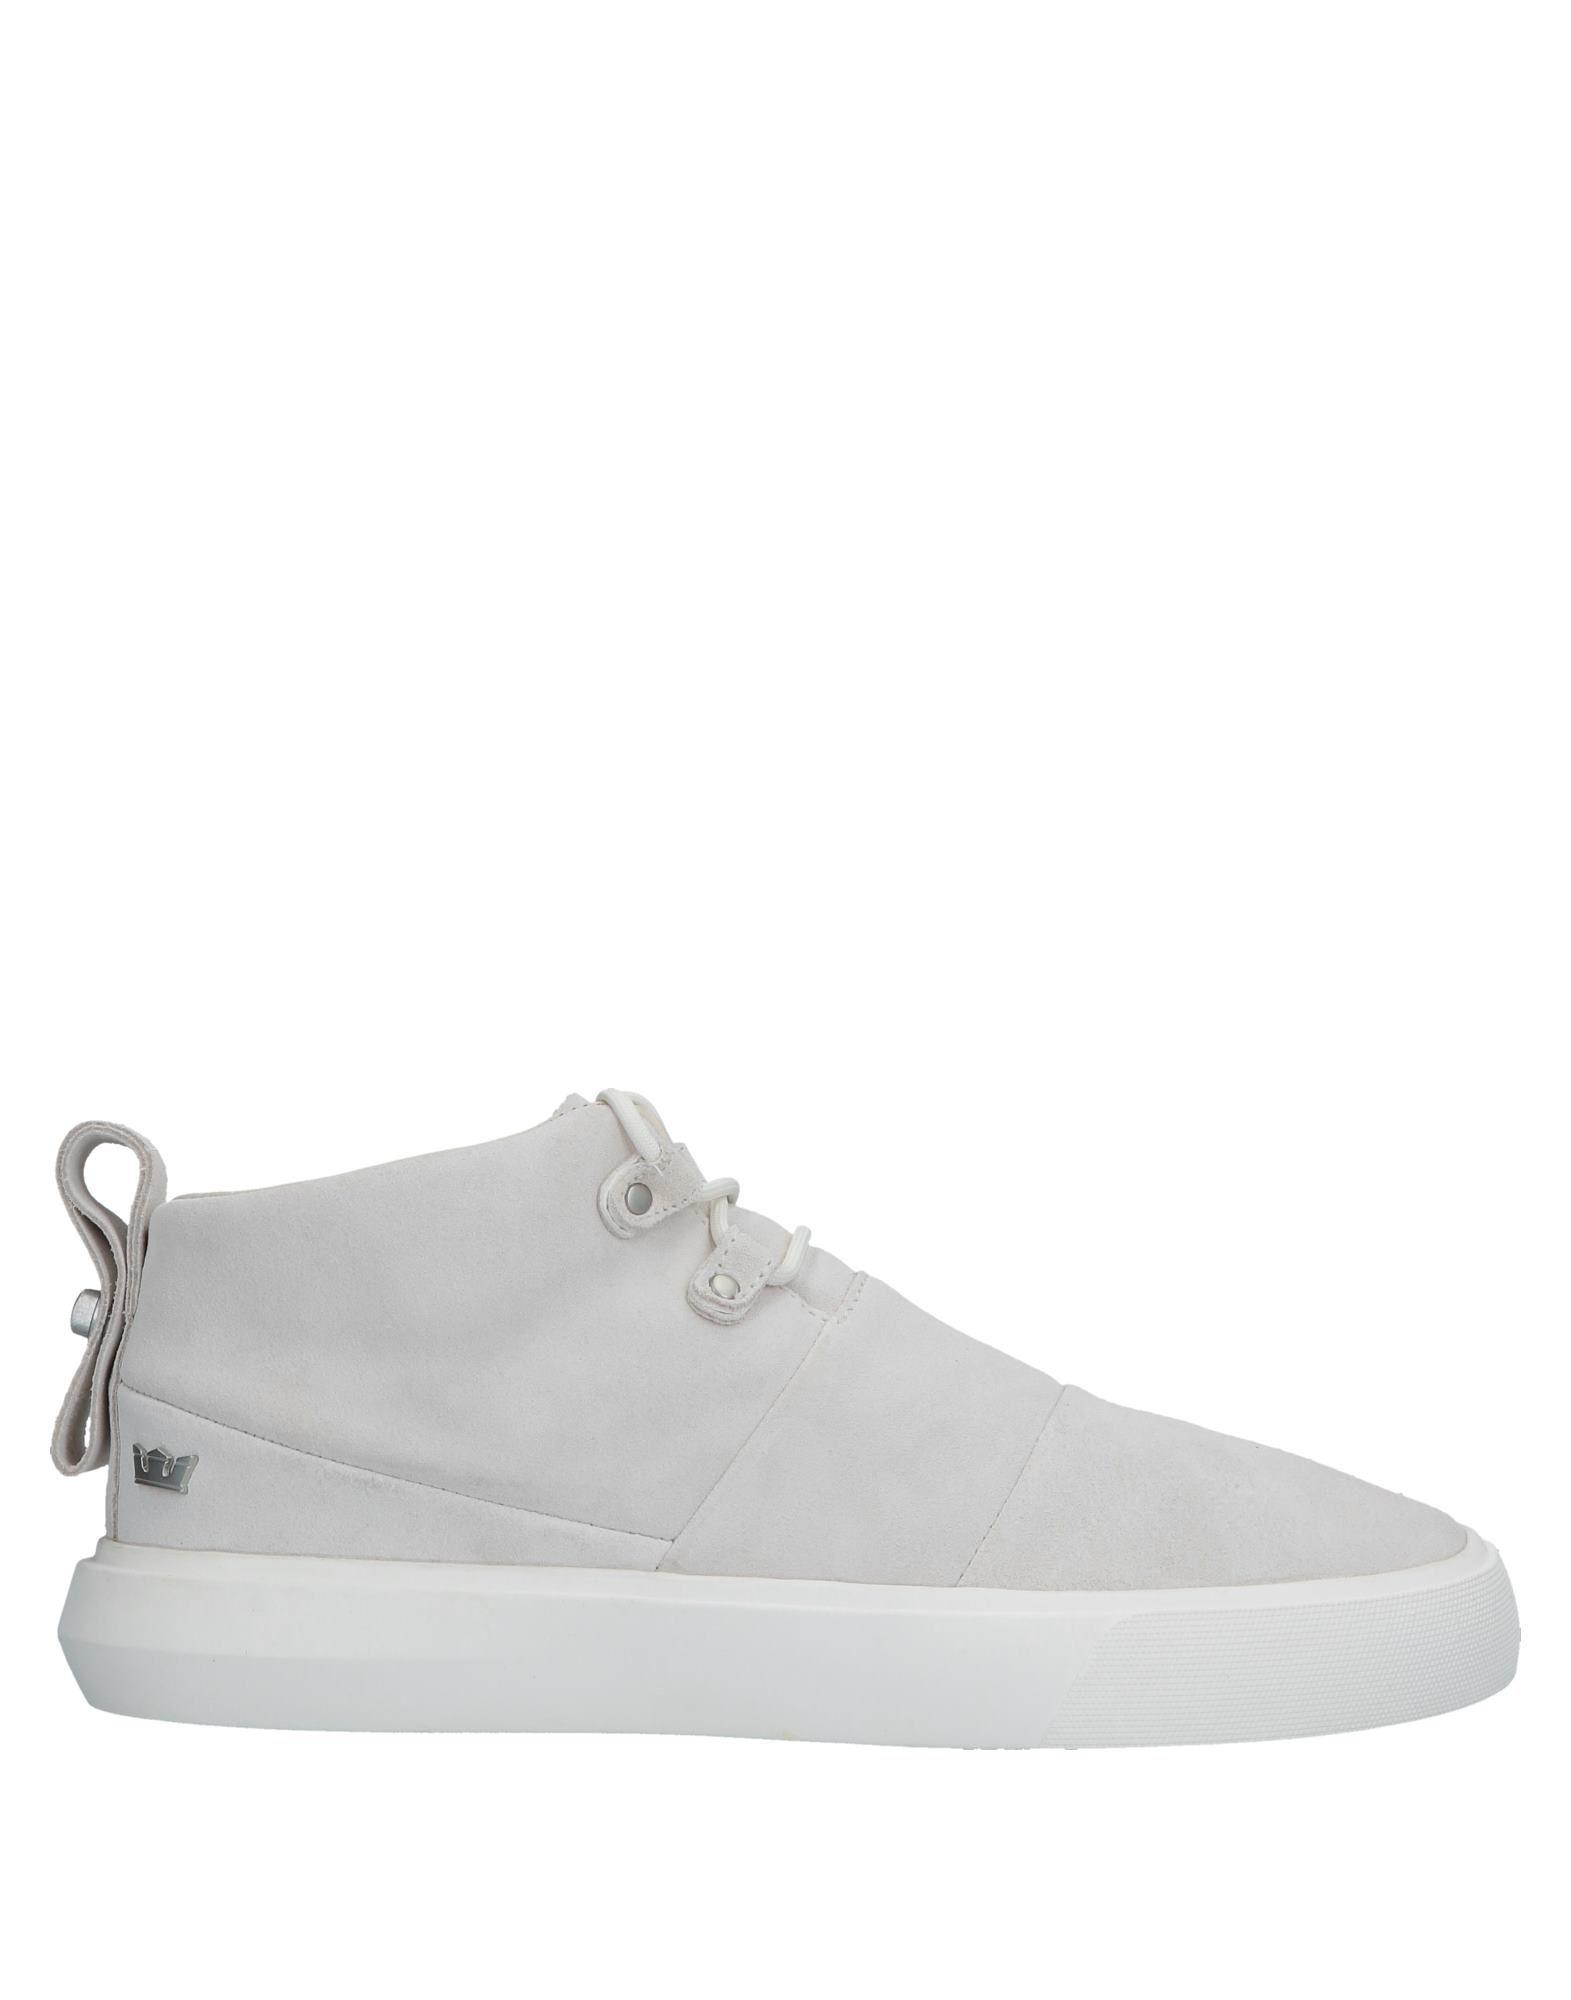 65196ce886e5 Lyst - Supra High-tops   Sneakers in Gray for Men